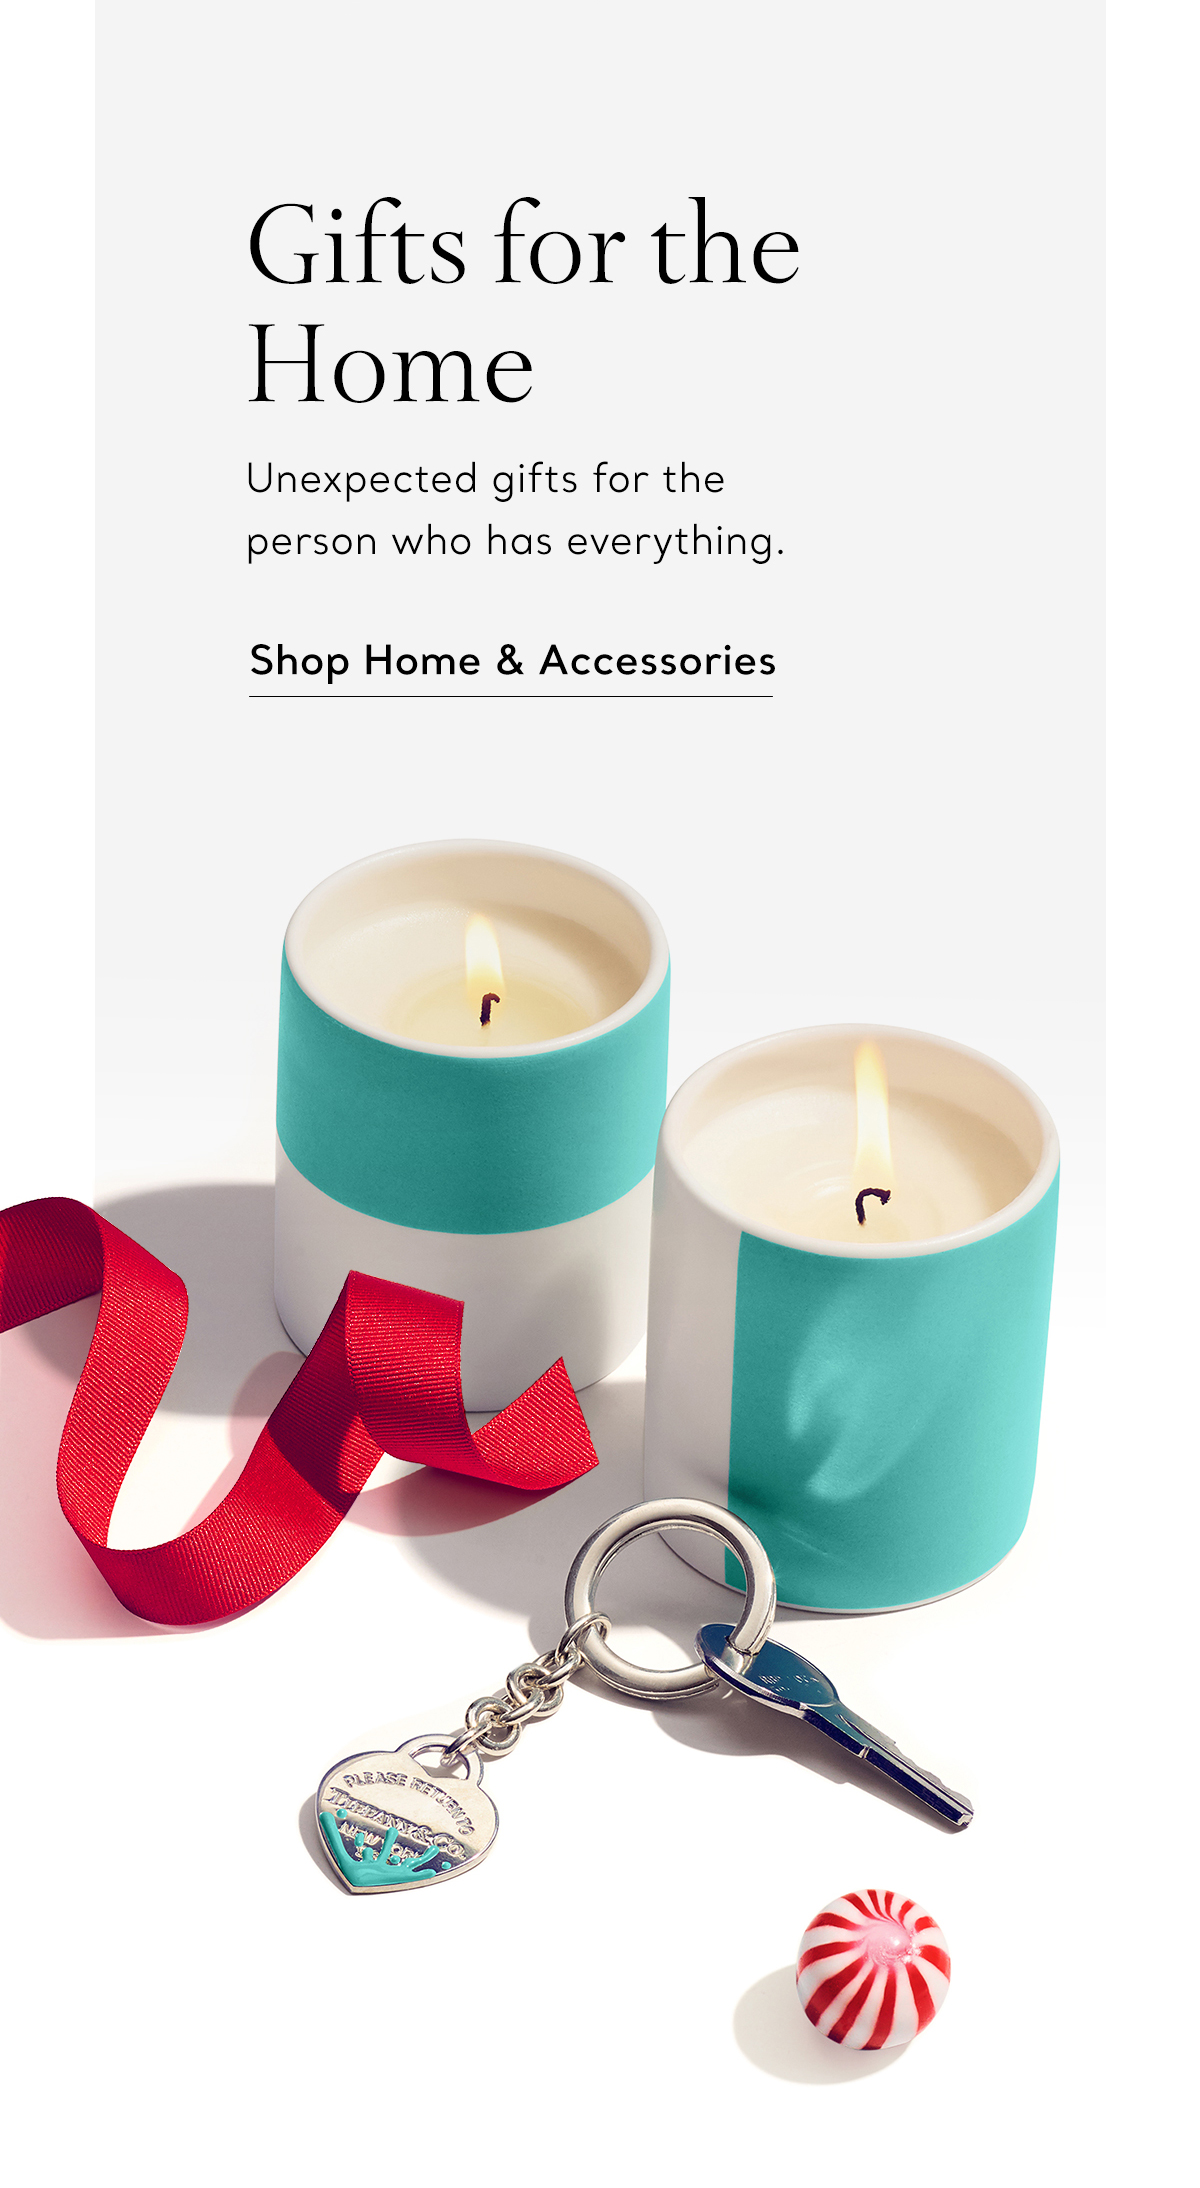 Shop Home & Accessories